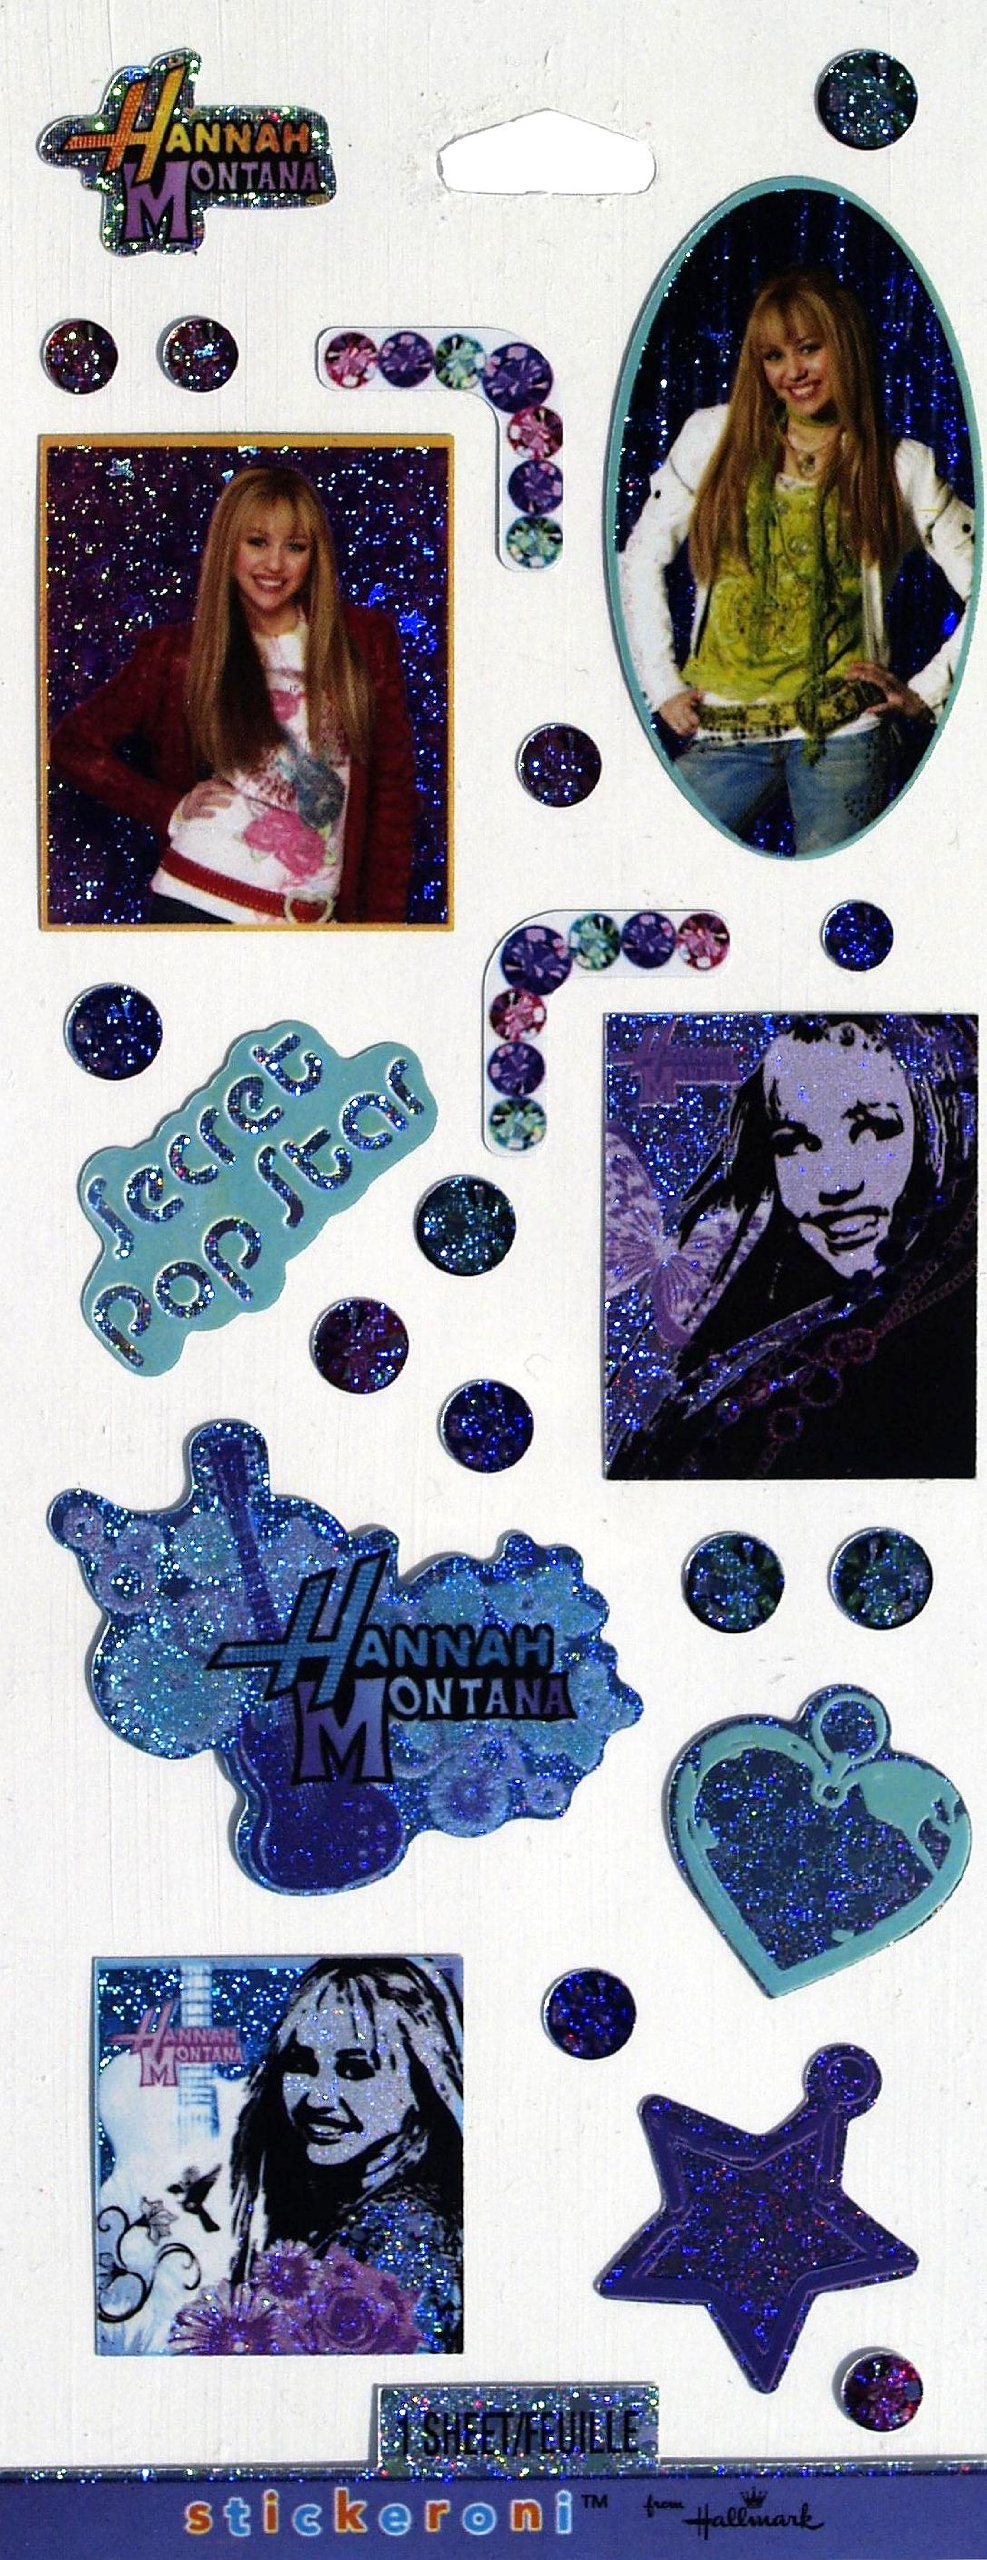 Hannah Montana Sticker Sheet